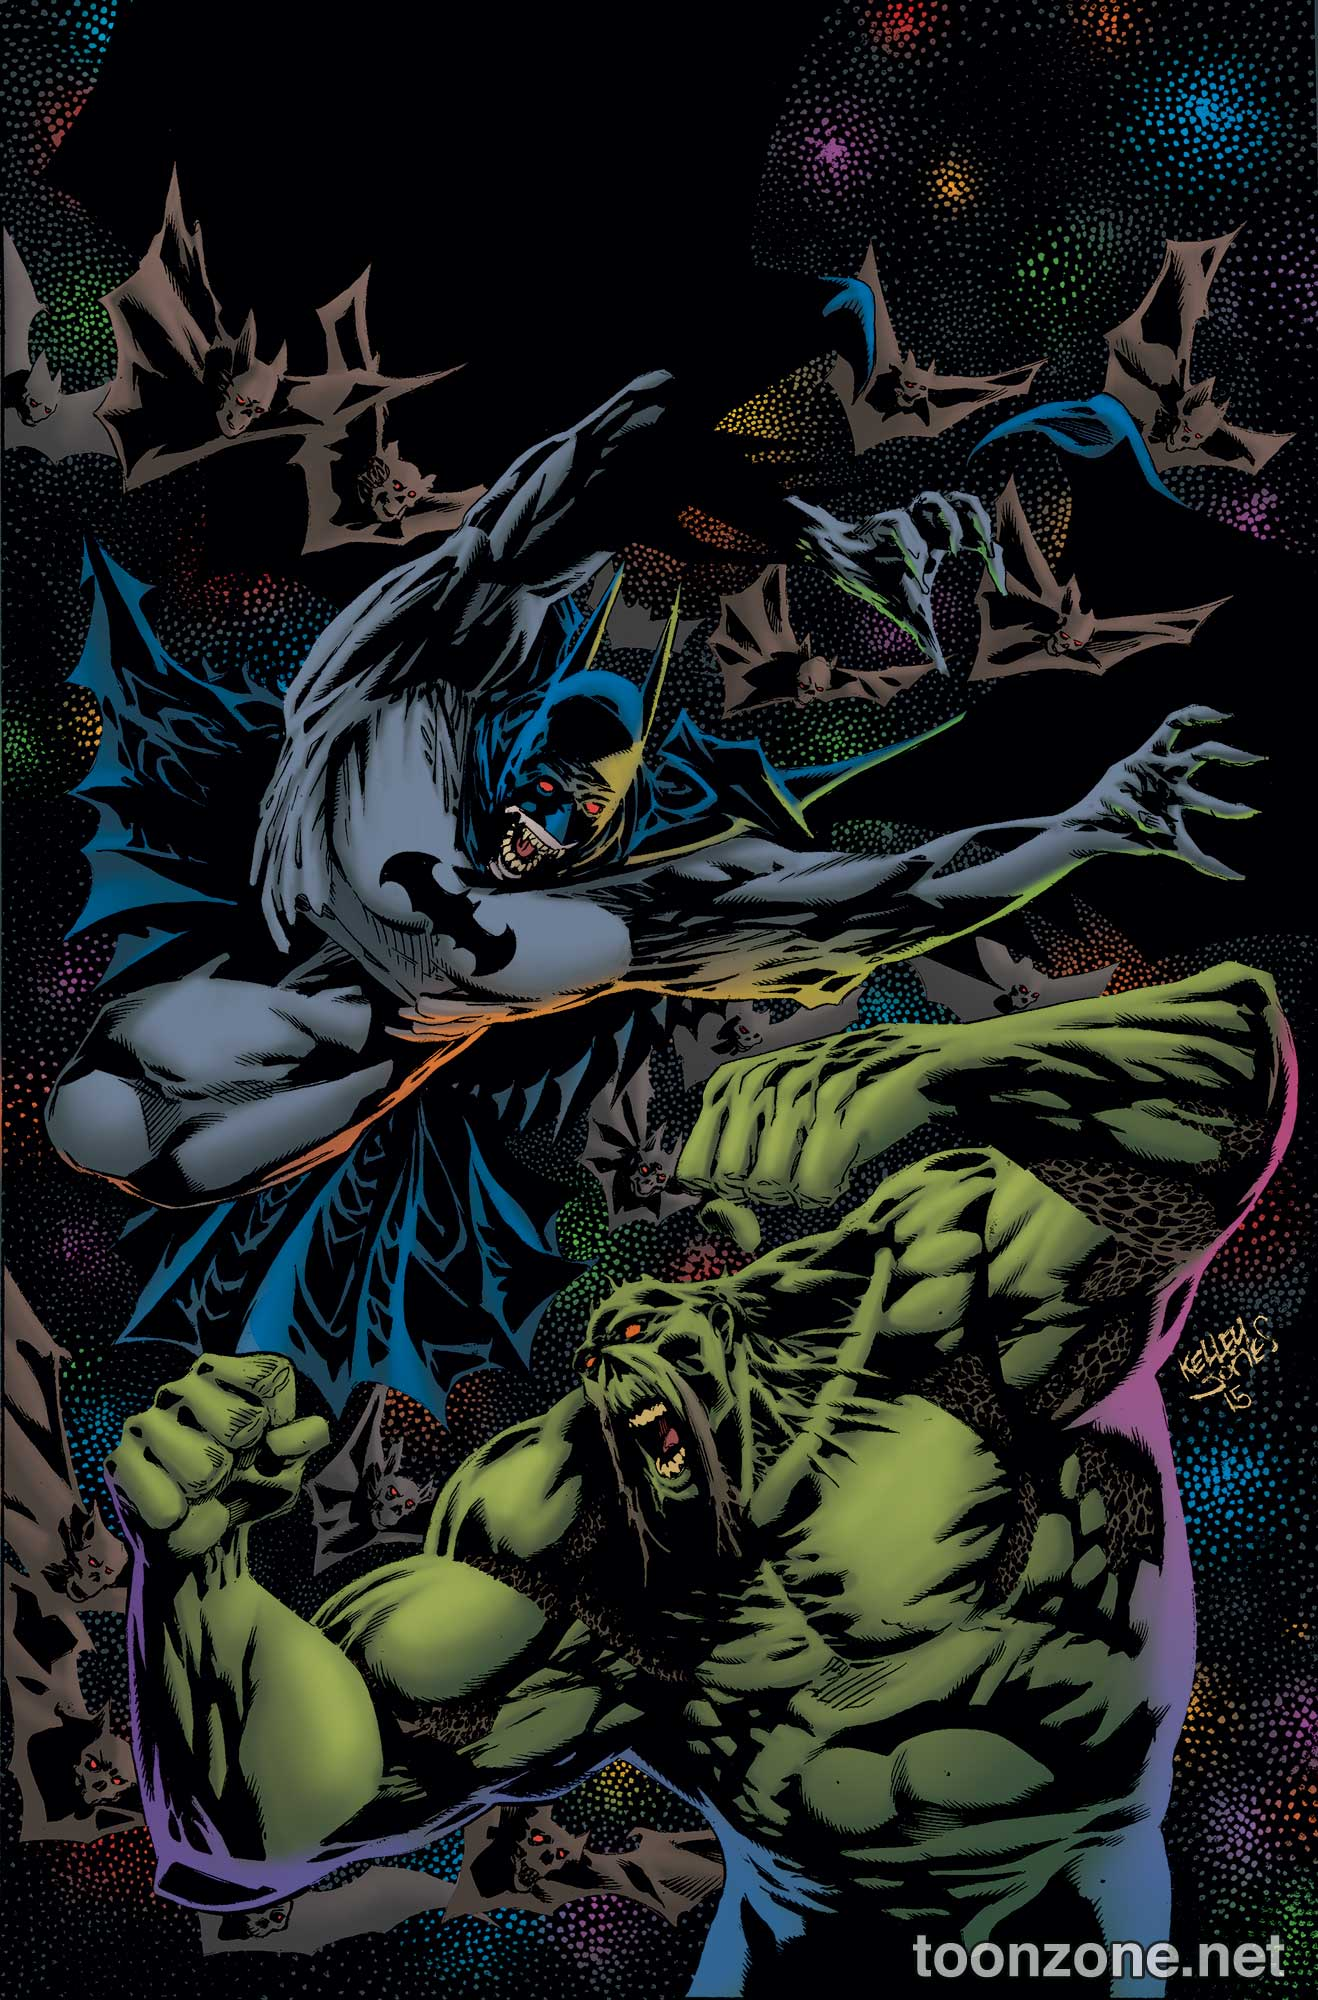 CONVERGENCE: SWAMP THING #2